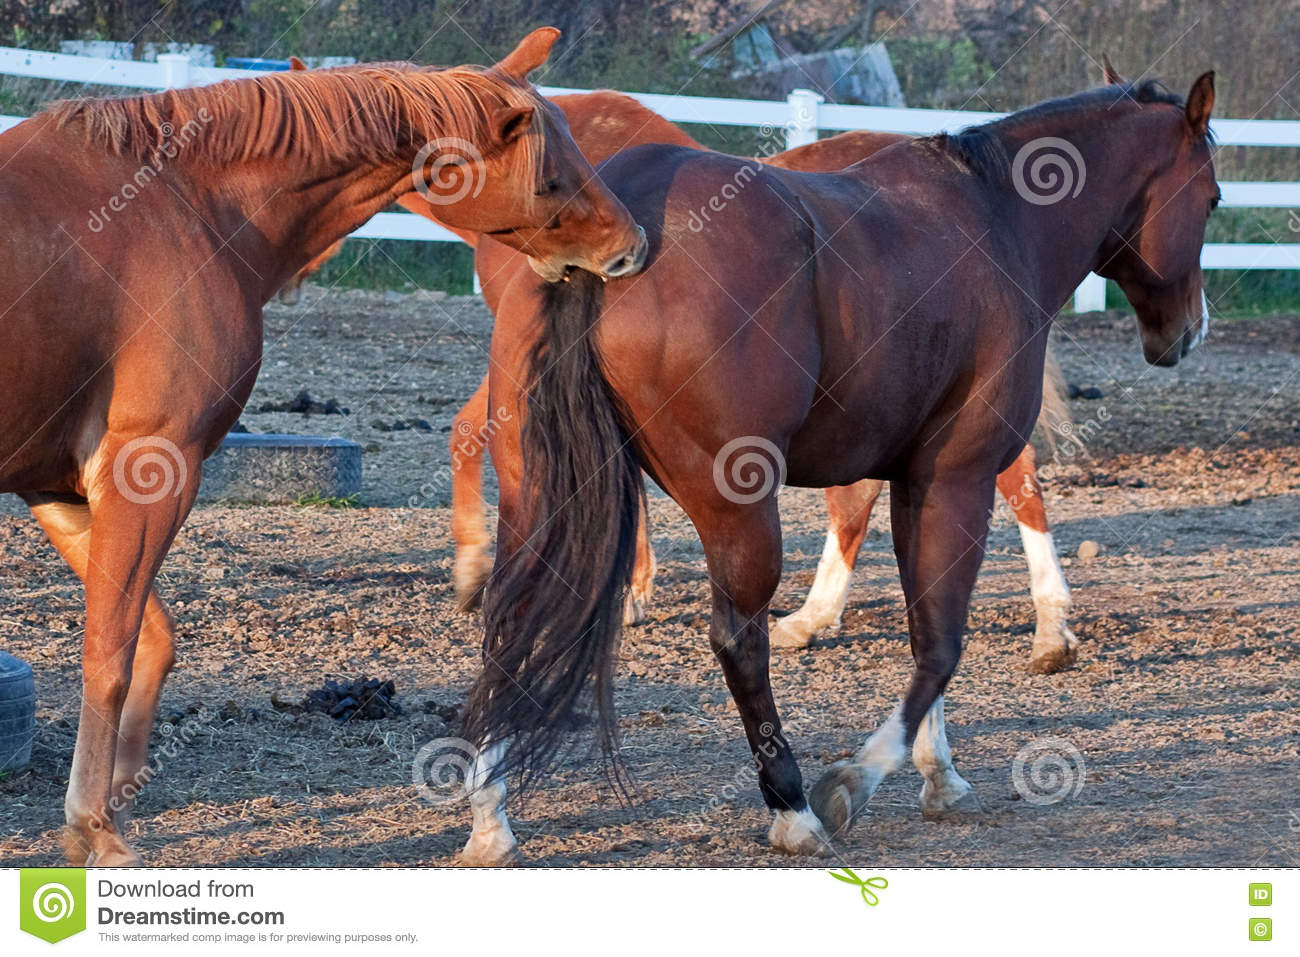 how to stop a horse from biting another horse